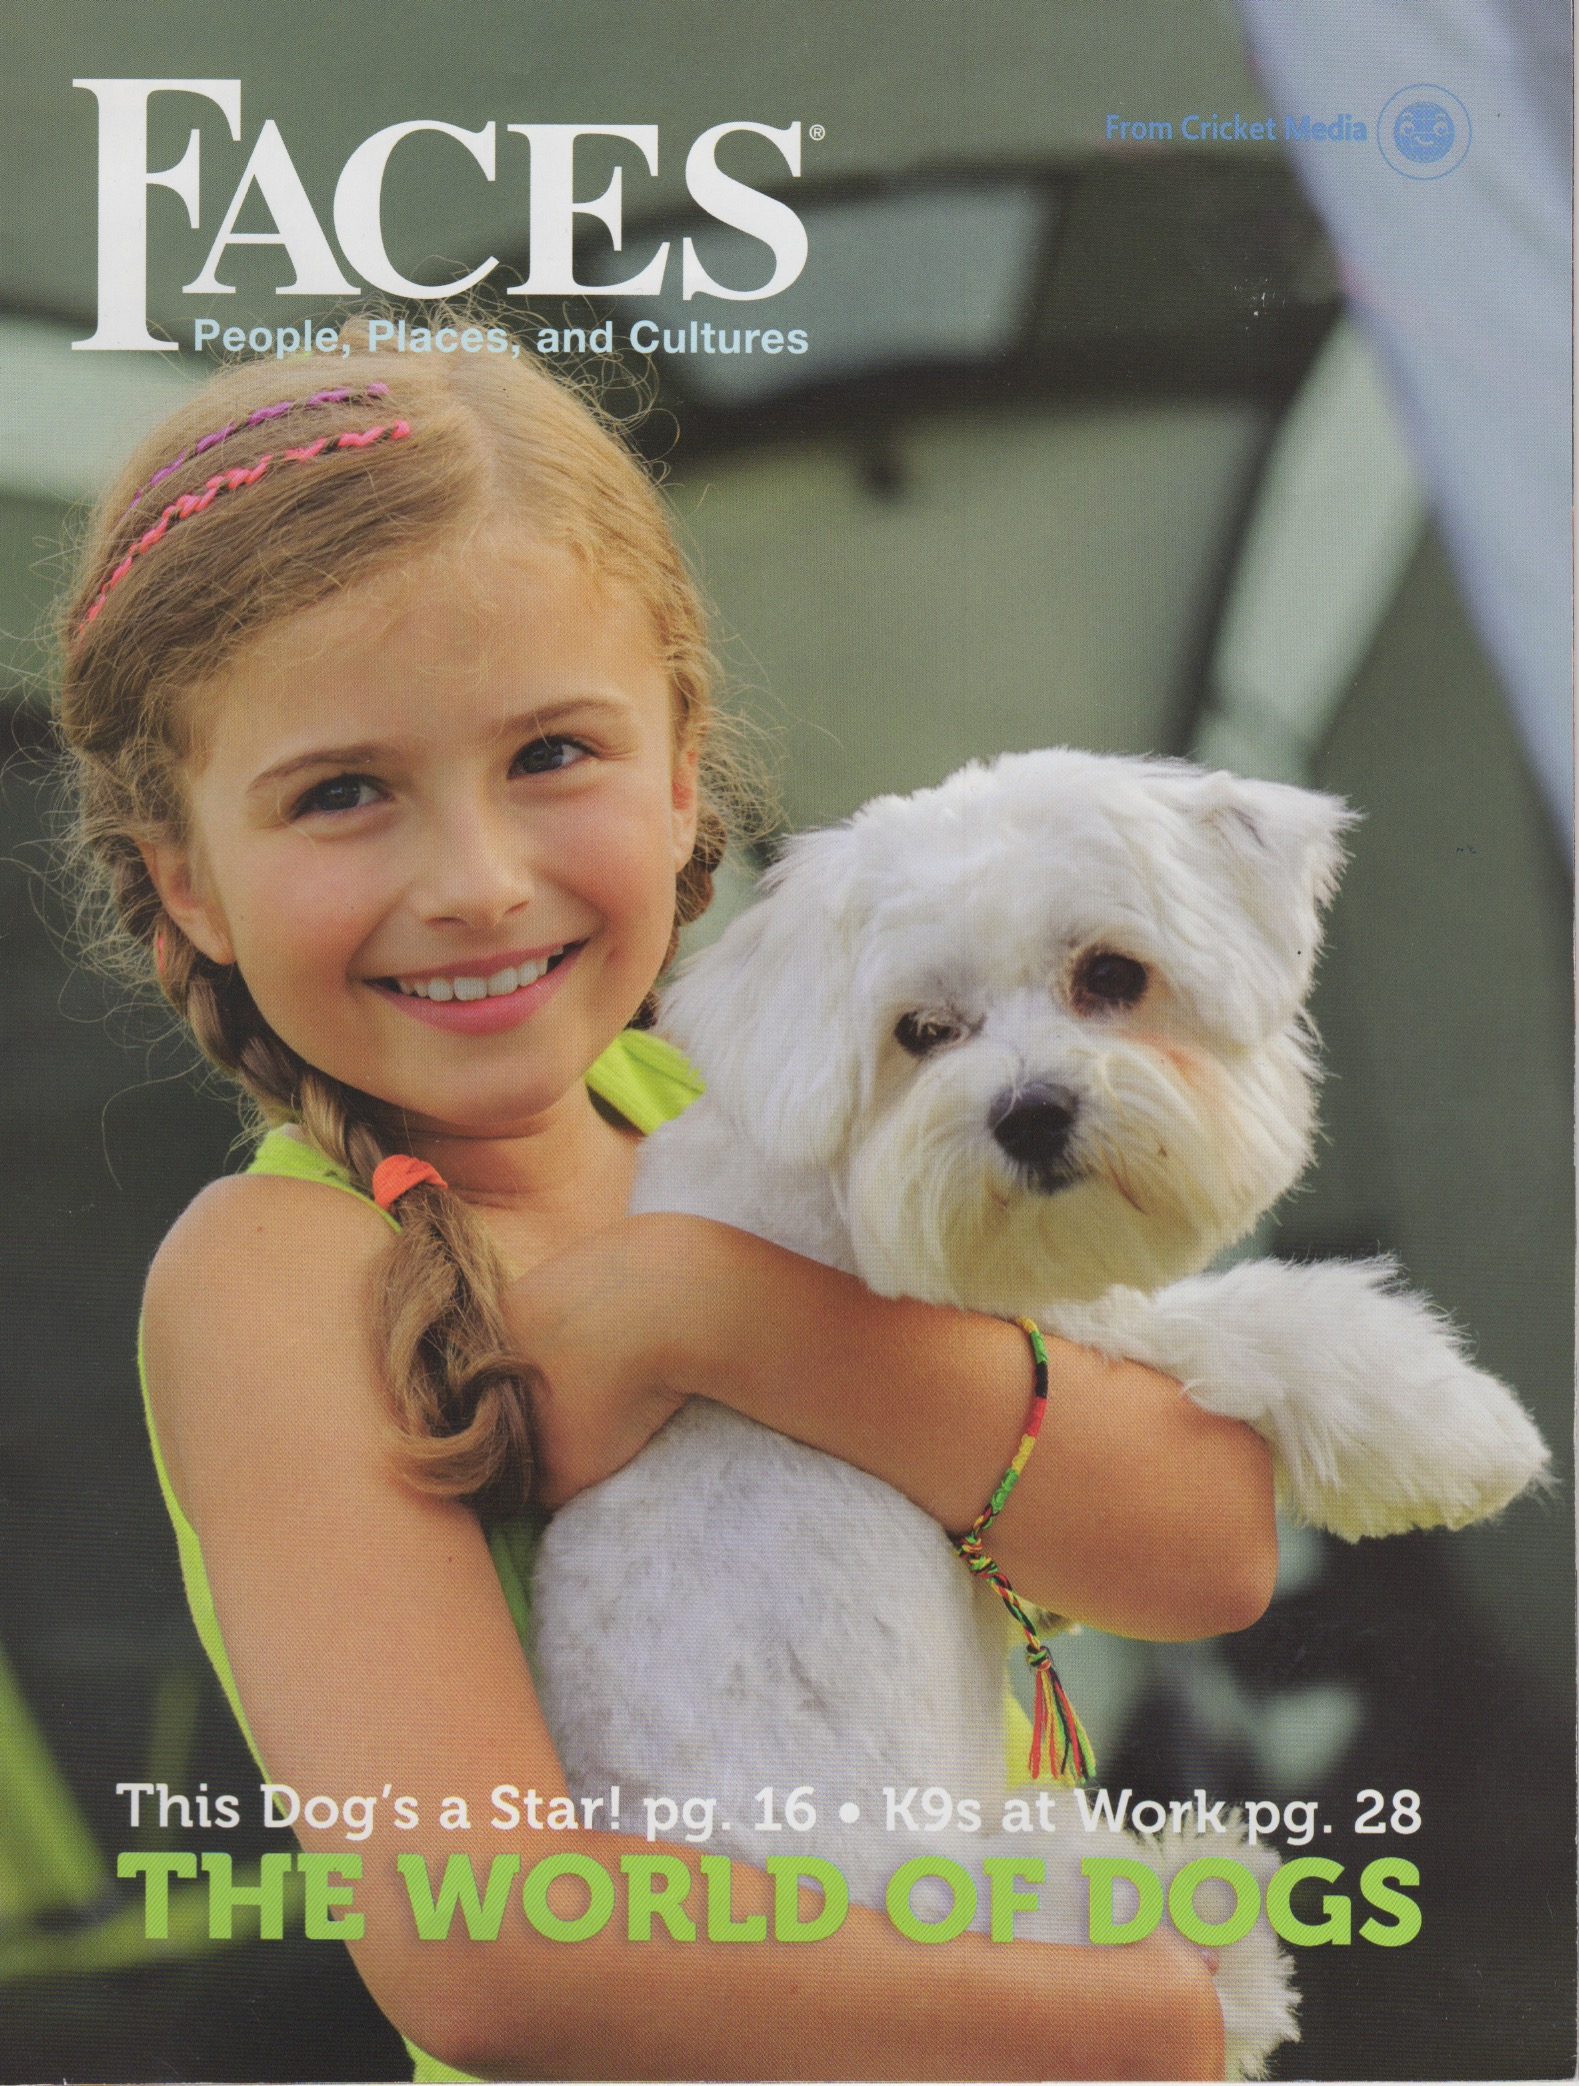 The World Of Dogs, October 2016, FACES Magazine